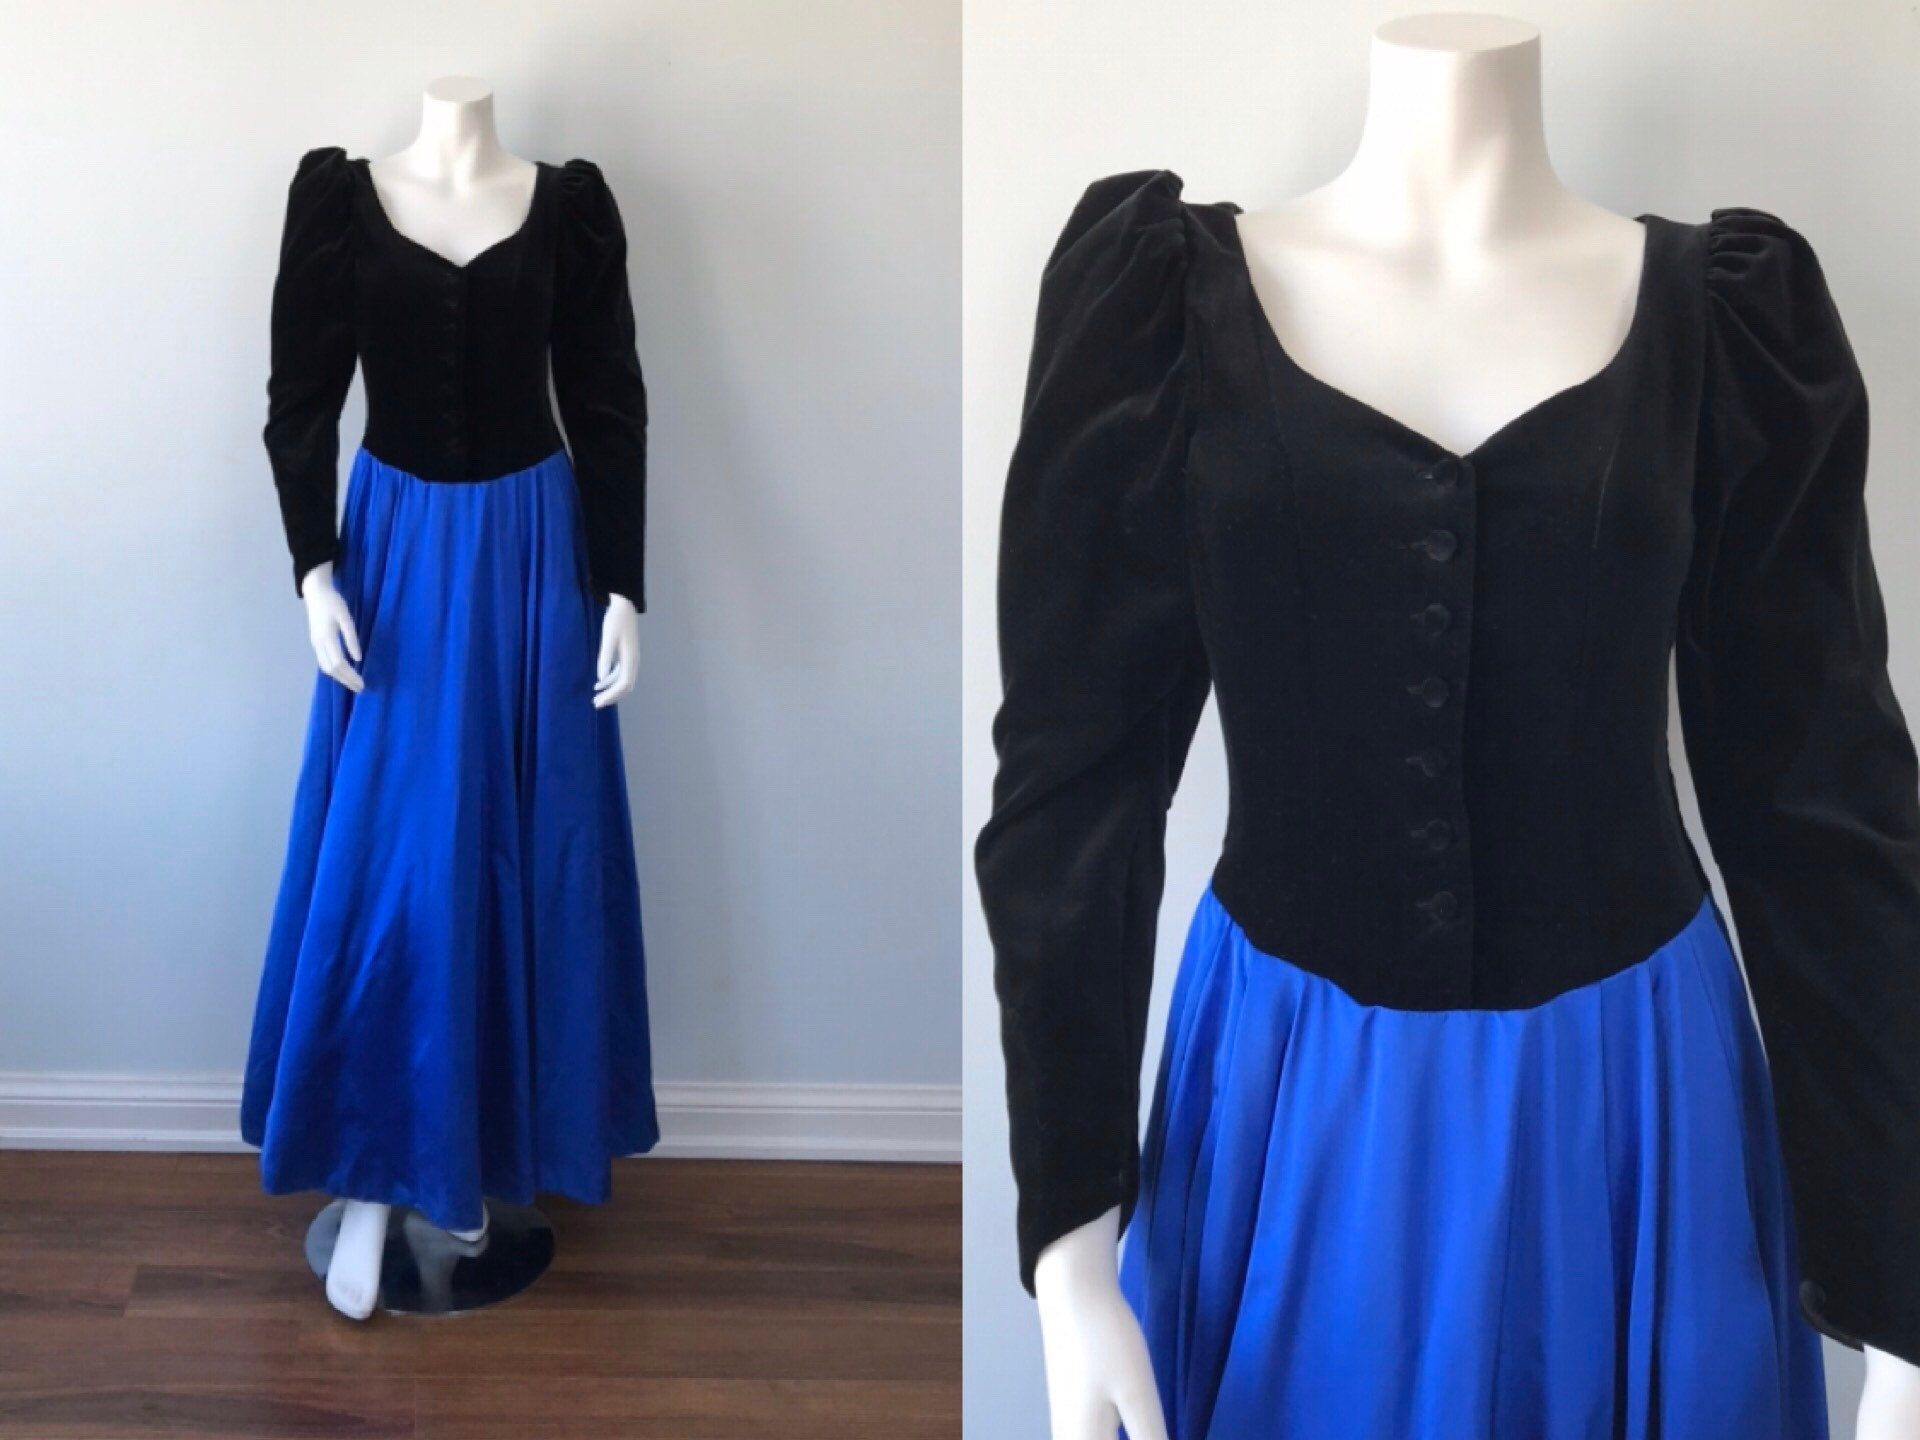 80s Dresses | Casual to Party Dresses Laura Ashley Evening Gown, 1980S Elegant, Wedding, Ashely, Dress, Formal Gown $27.26 AT vintagedancer.com